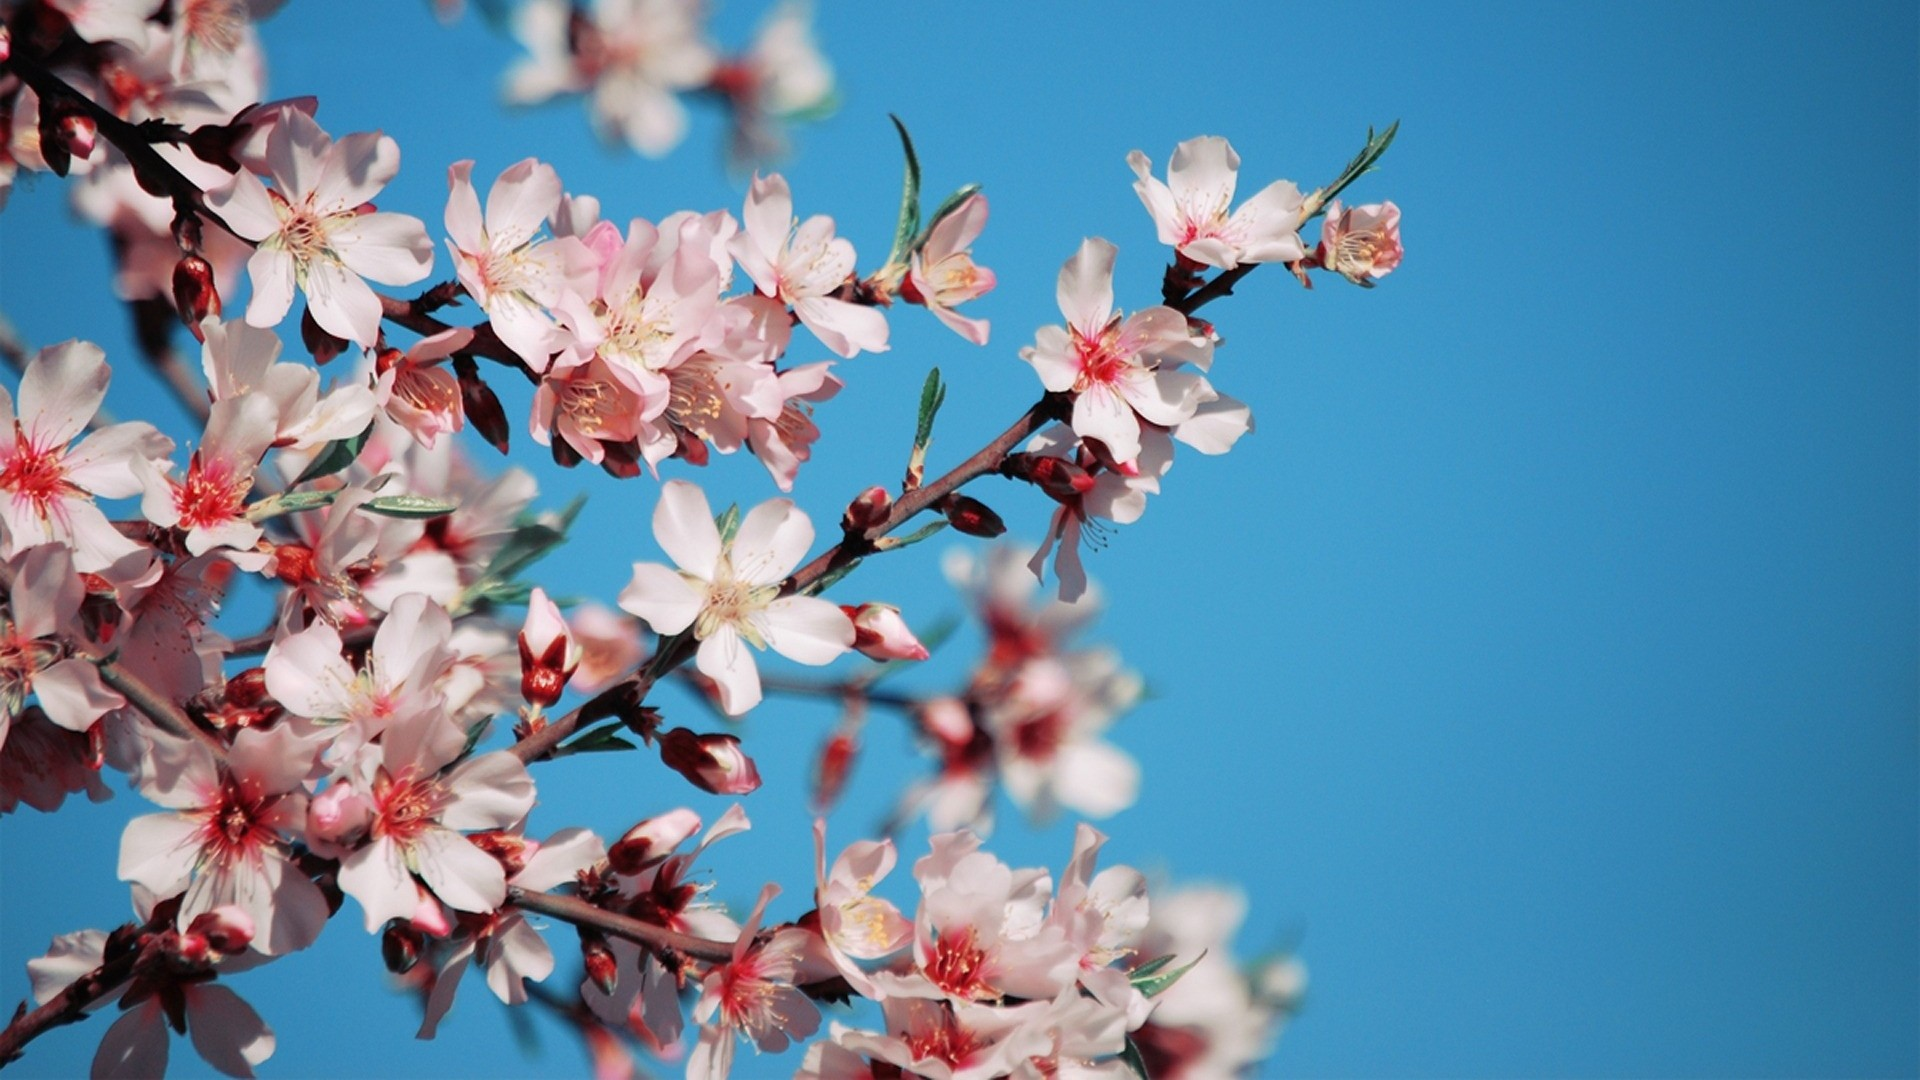 Res: 1920x1080, Pink And Blue Flowers Full HD Image Download, Thi Gesell